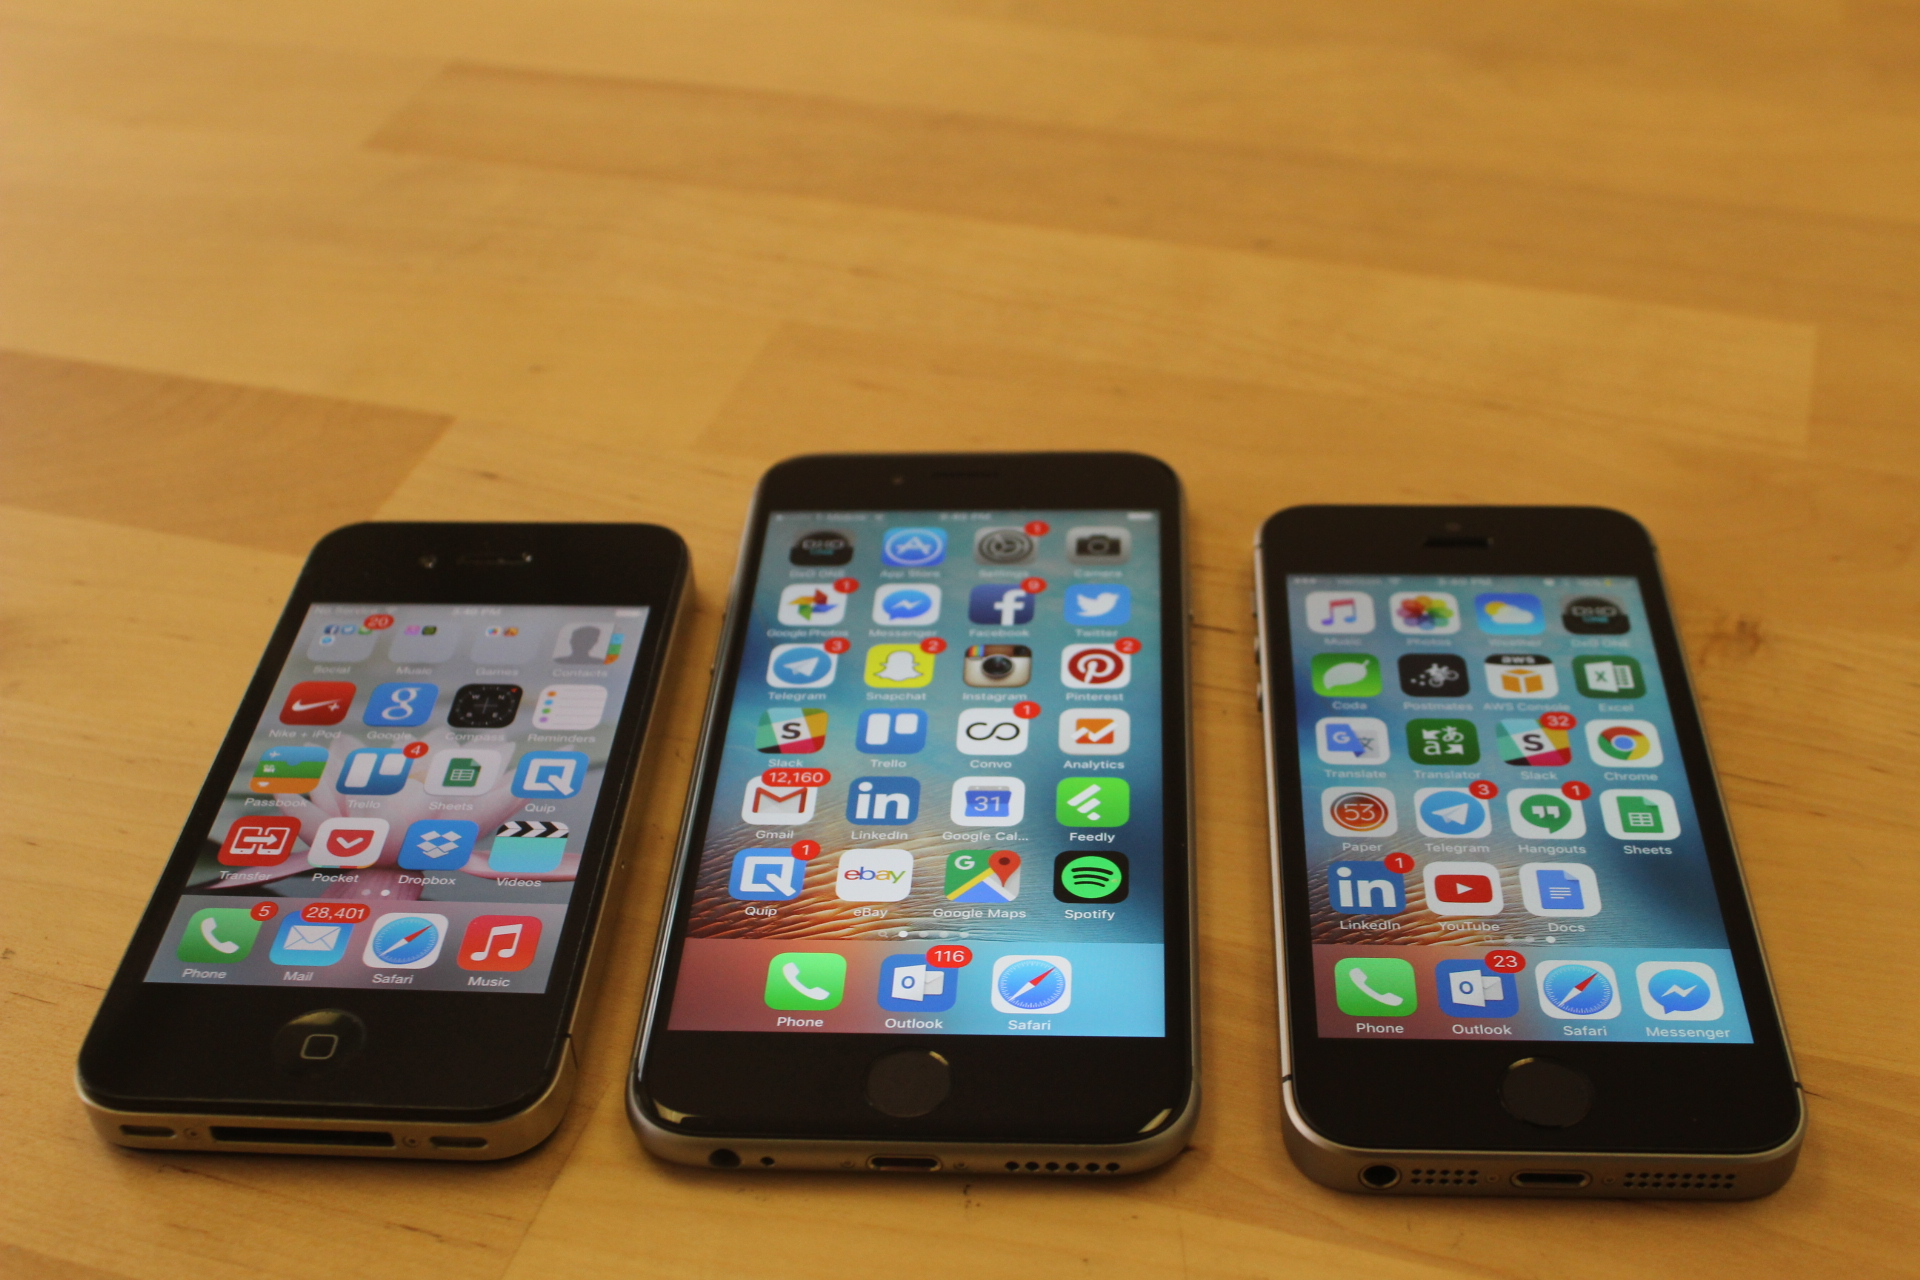 From left, the iPhone 4 from 2010, the iPhone 6s from 2015, and the new iPhone SE.